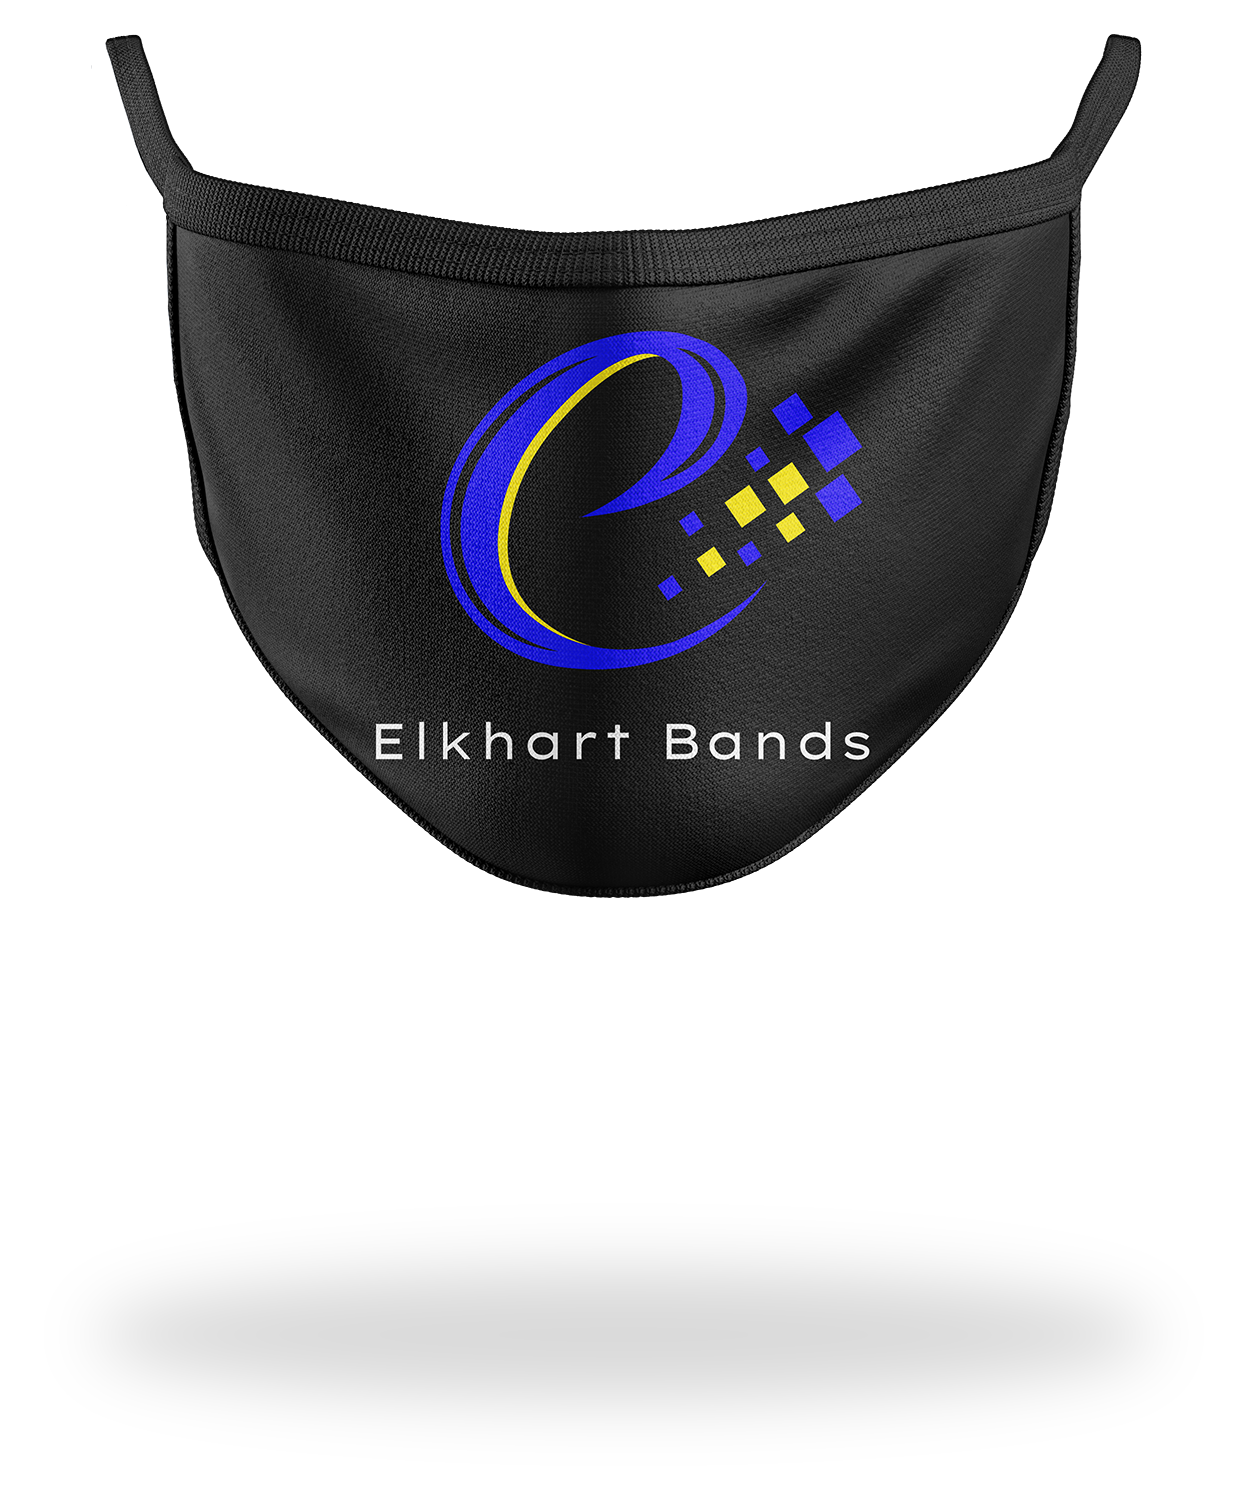 Elkhart Bands Mask v1